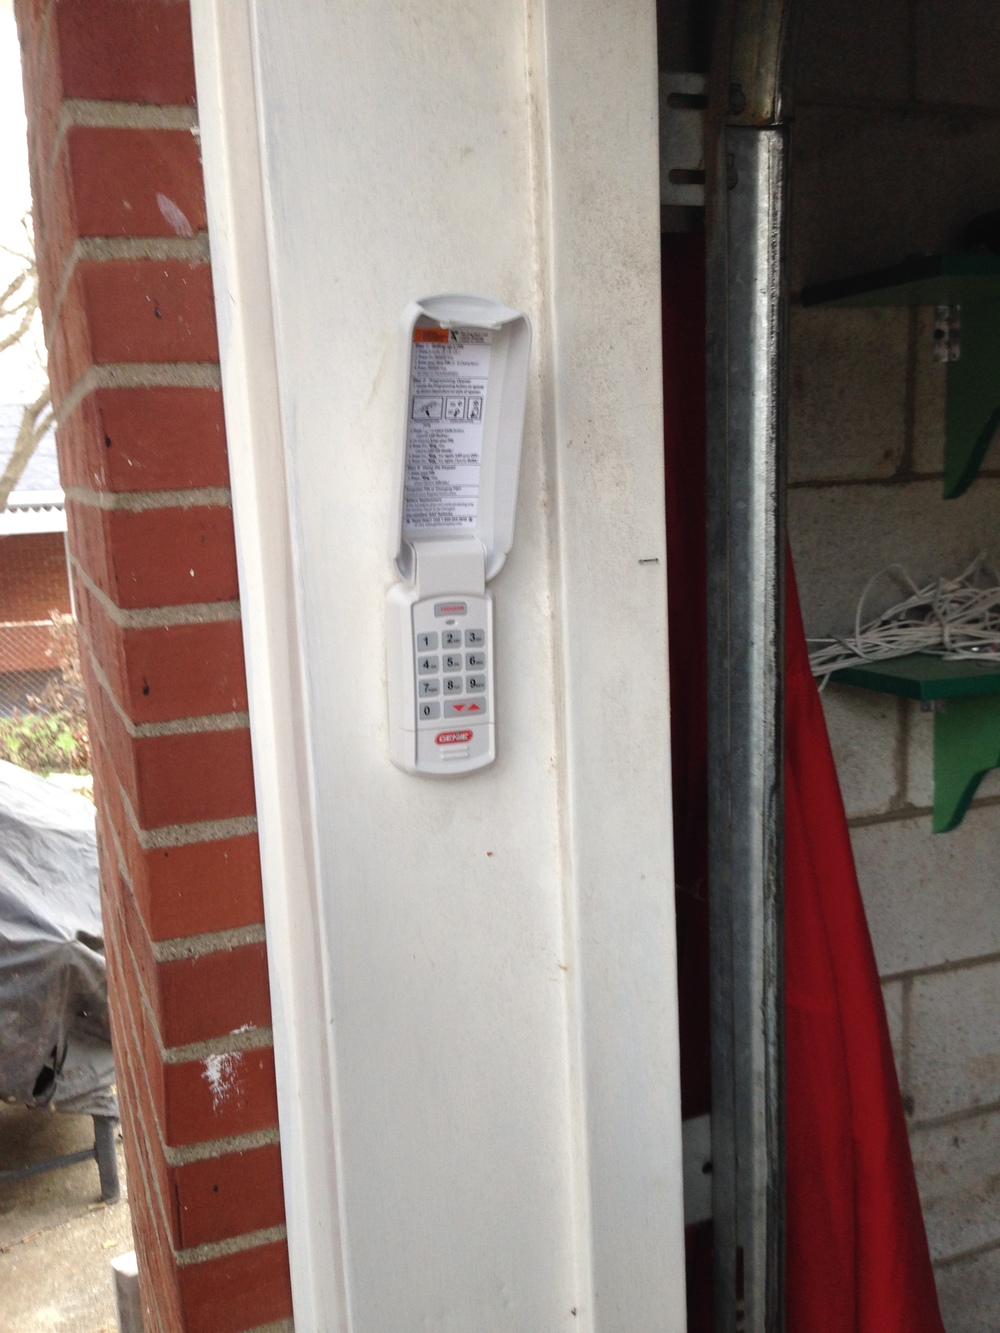 Garage Door Keypad.JPG